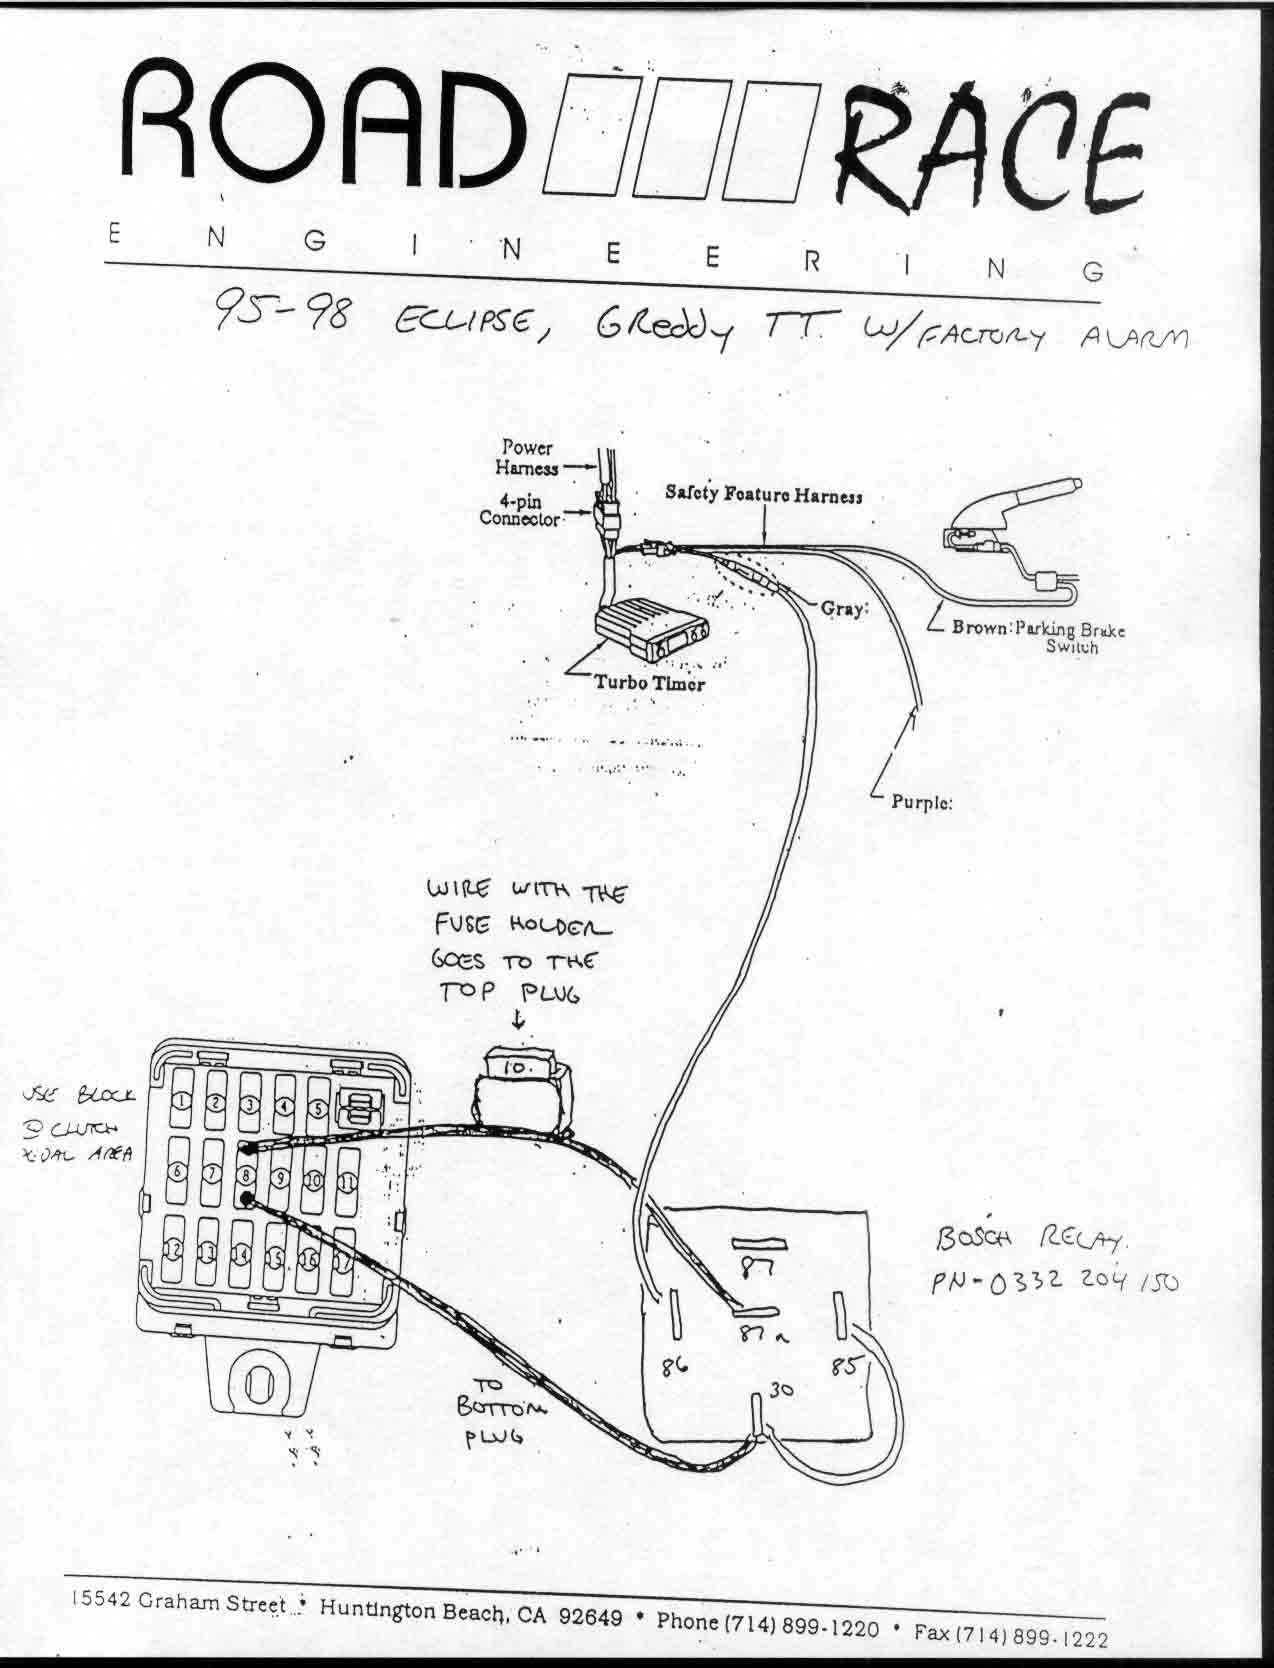 Hks Evc Ez Wiring Diagram Auto Electrical Related With